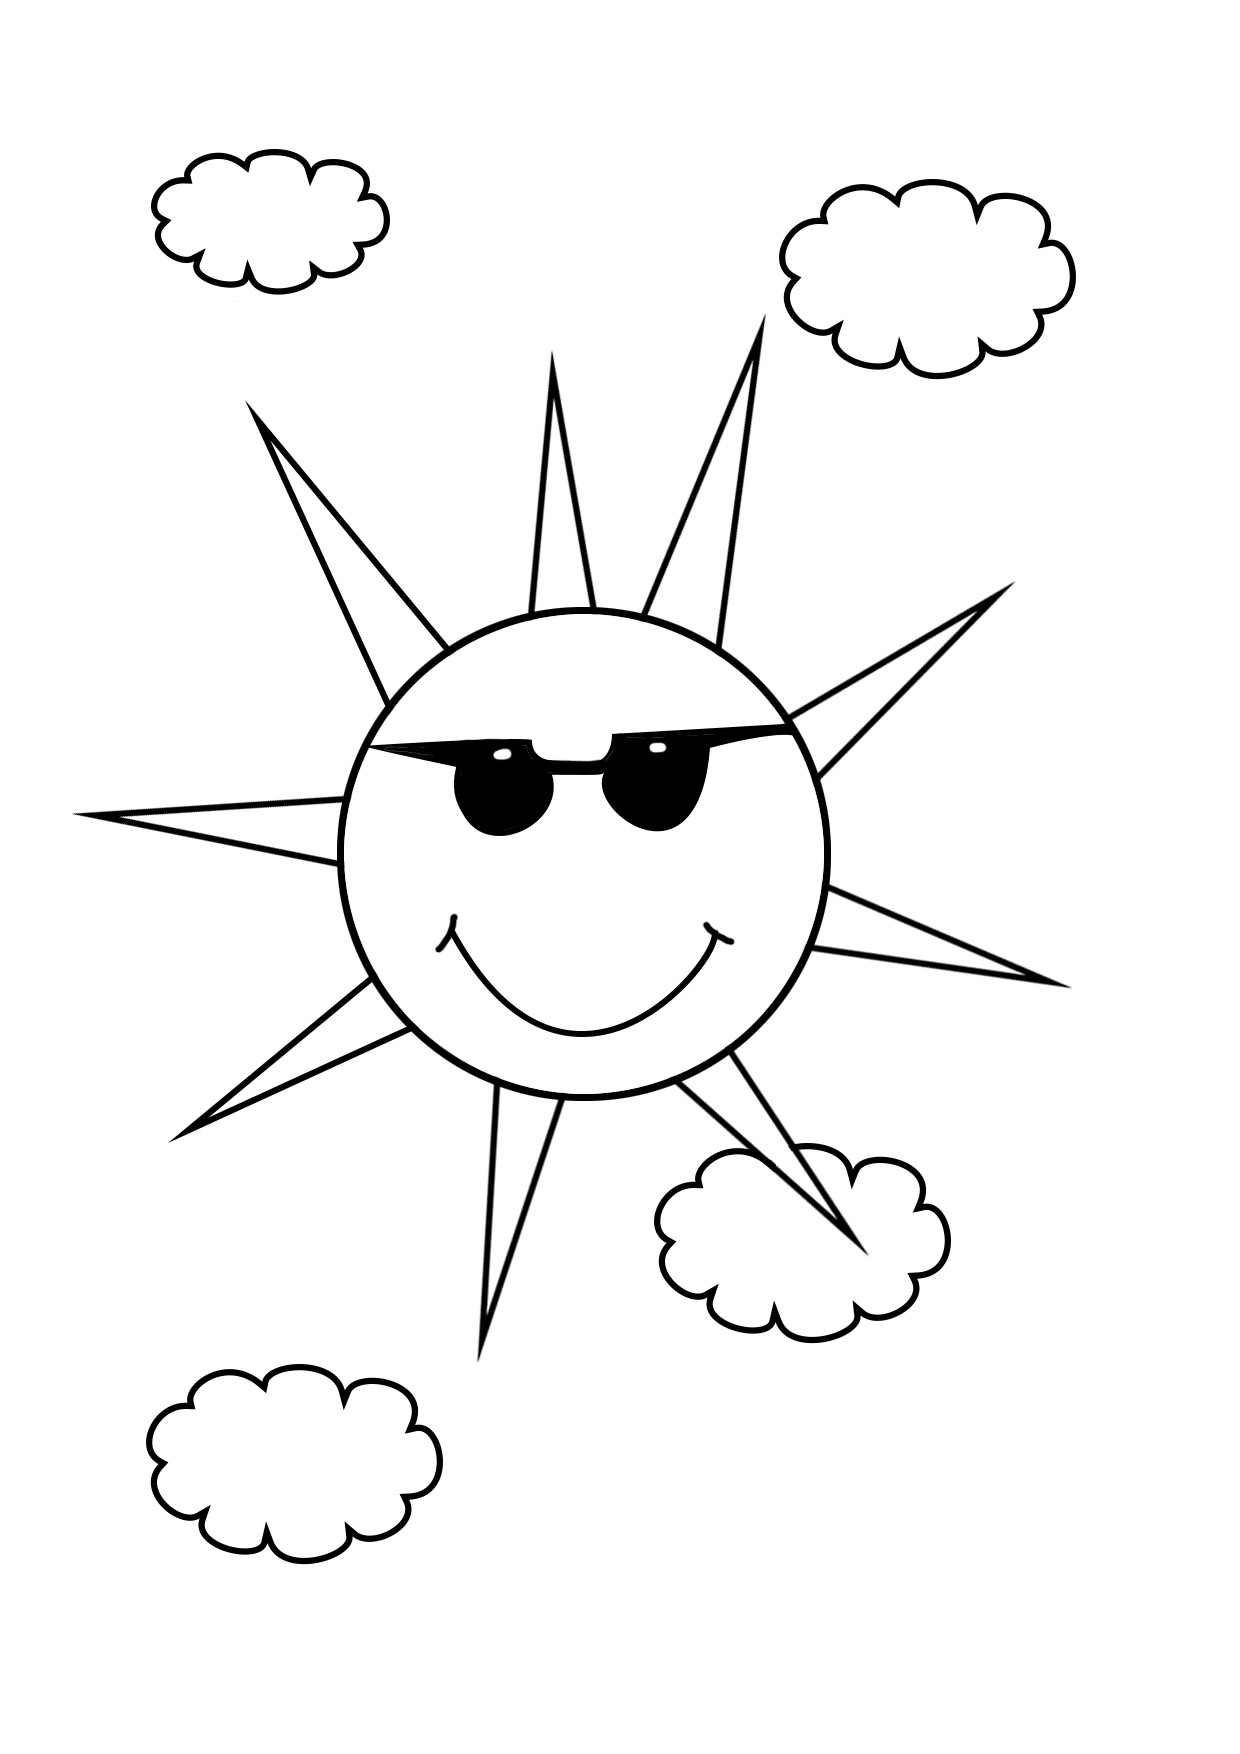 sun coloring for kids sun coloring page kostenlose malvorlagen coloring sun kids for coloring